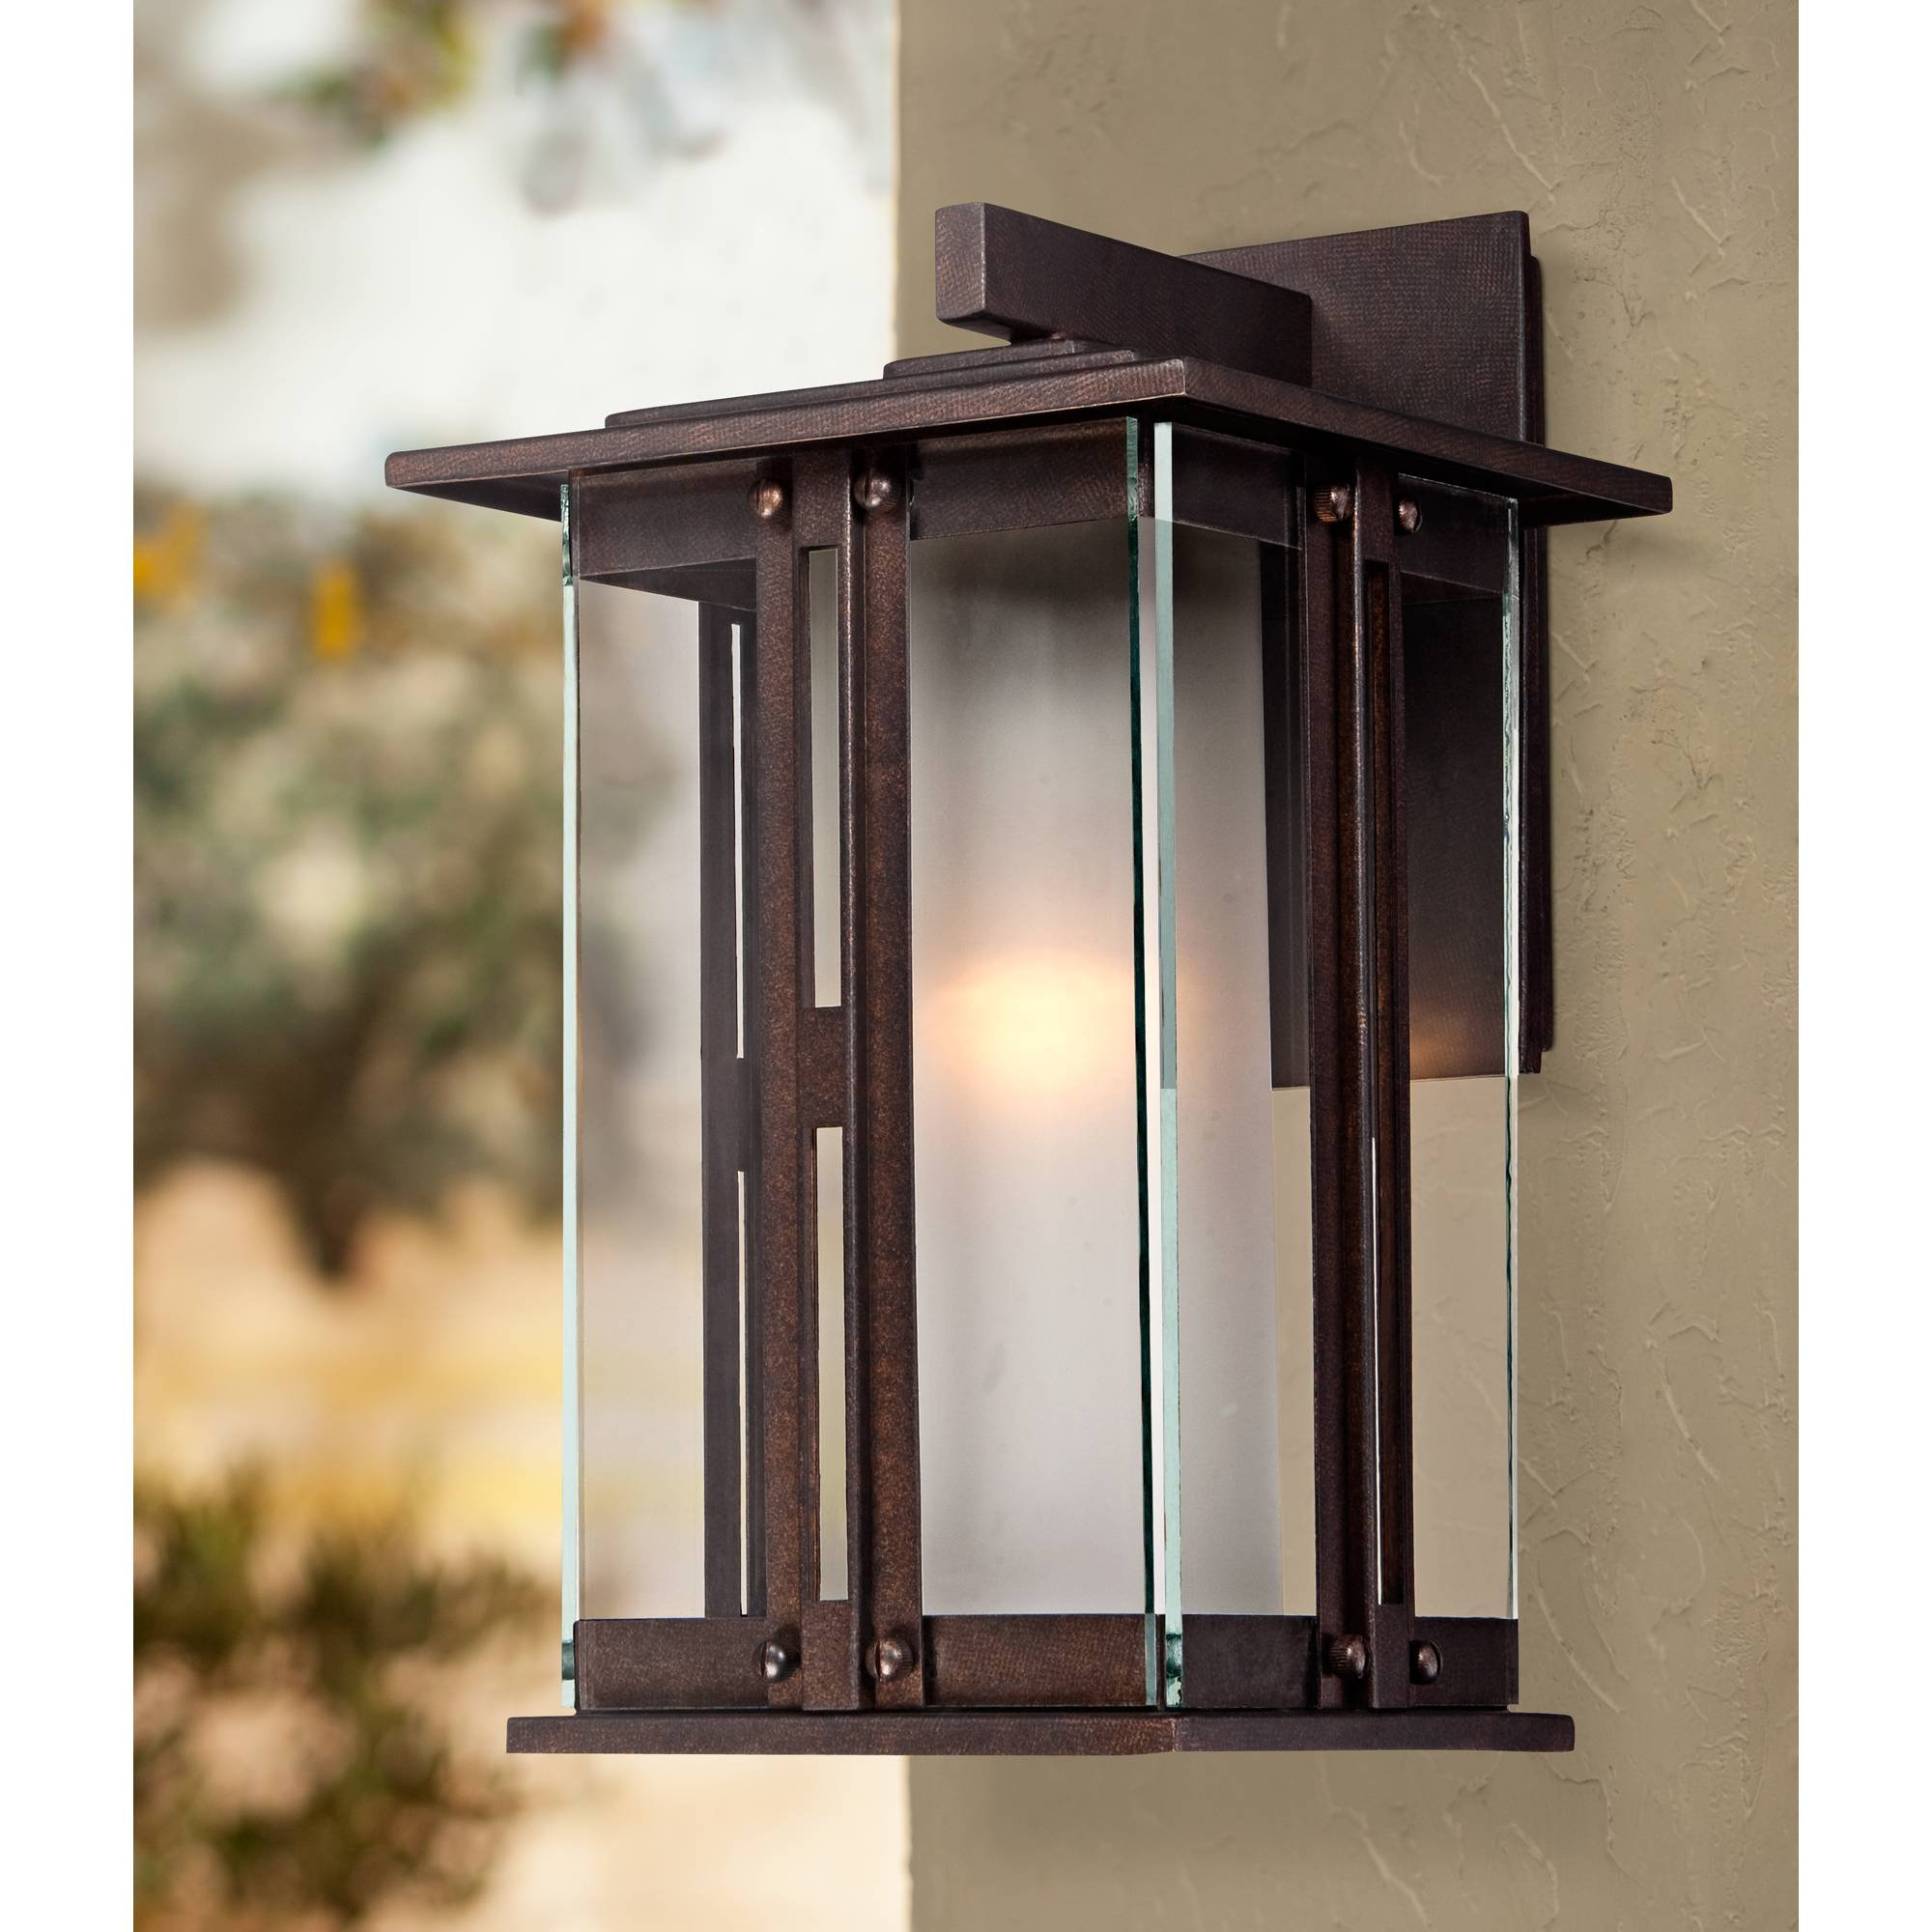 "Fallbrook Modern Outdoor Wall Light Fixture Bronze 13"" Clear and Frosted Glass Lantern for Exterior House Porch Patio - Franklin Iron Works"